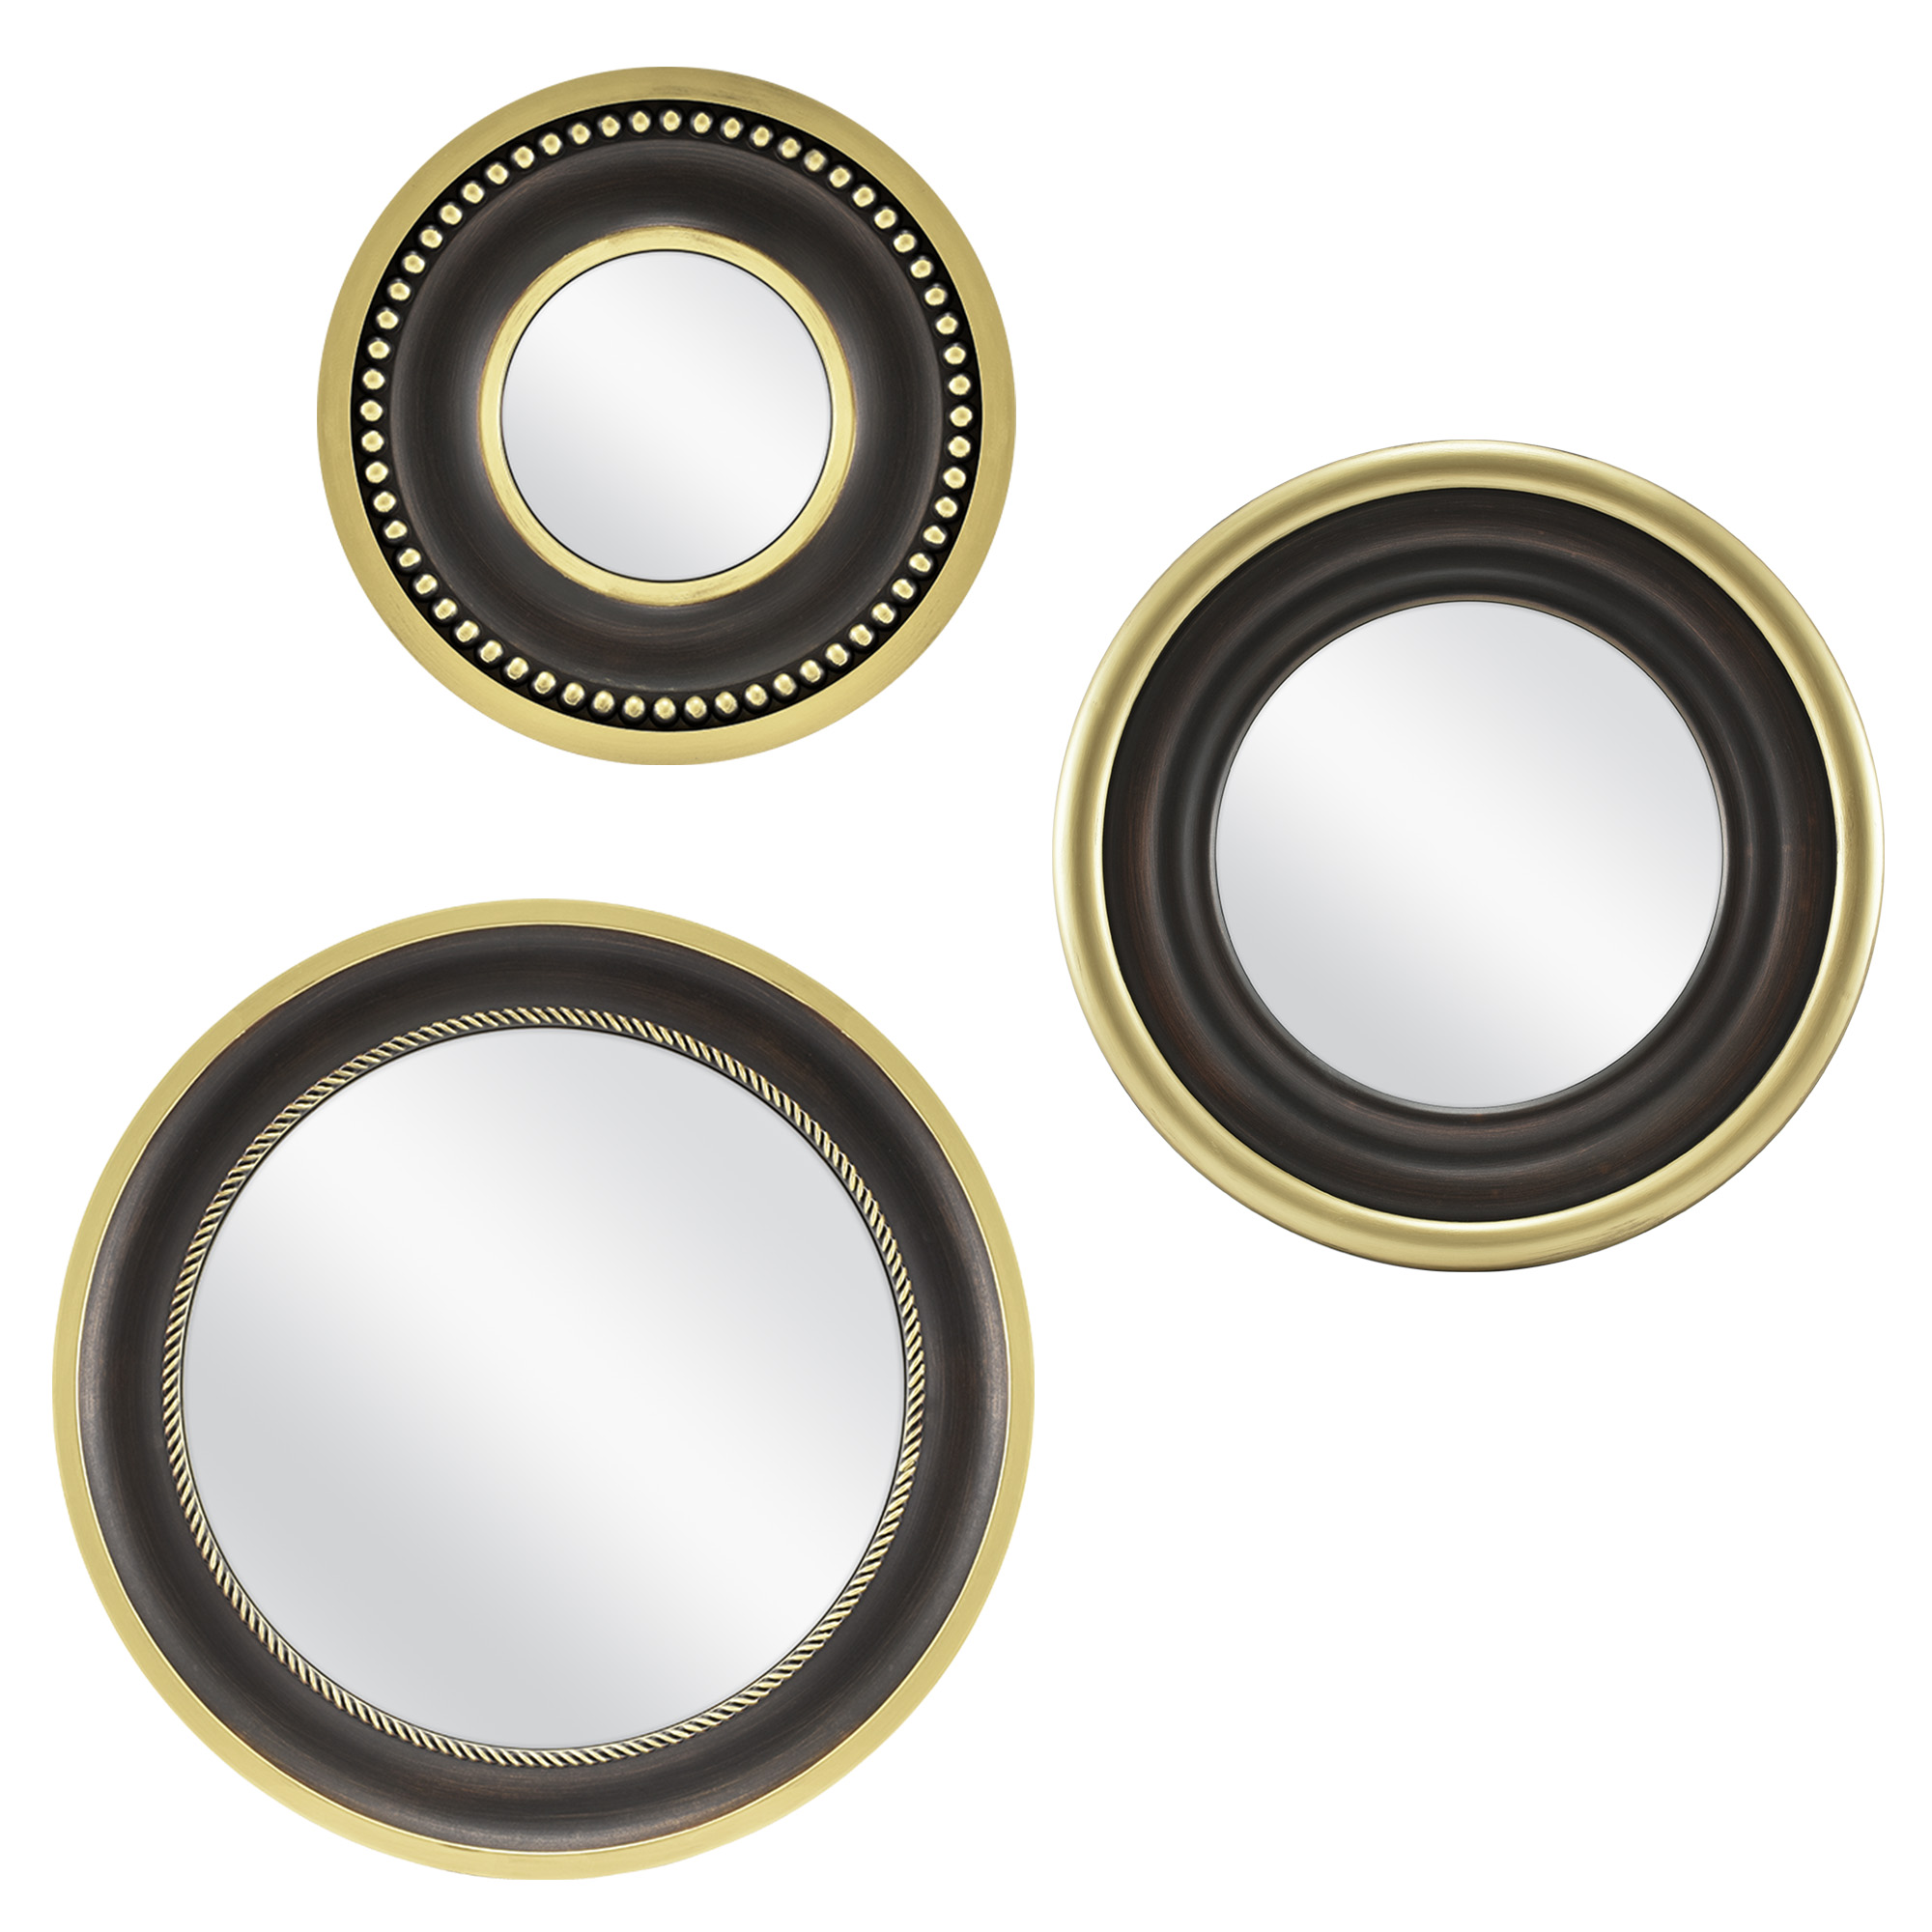 Mainstays 3-Piece Round Mirror Set, Bronze by MCS Industries, Inc.